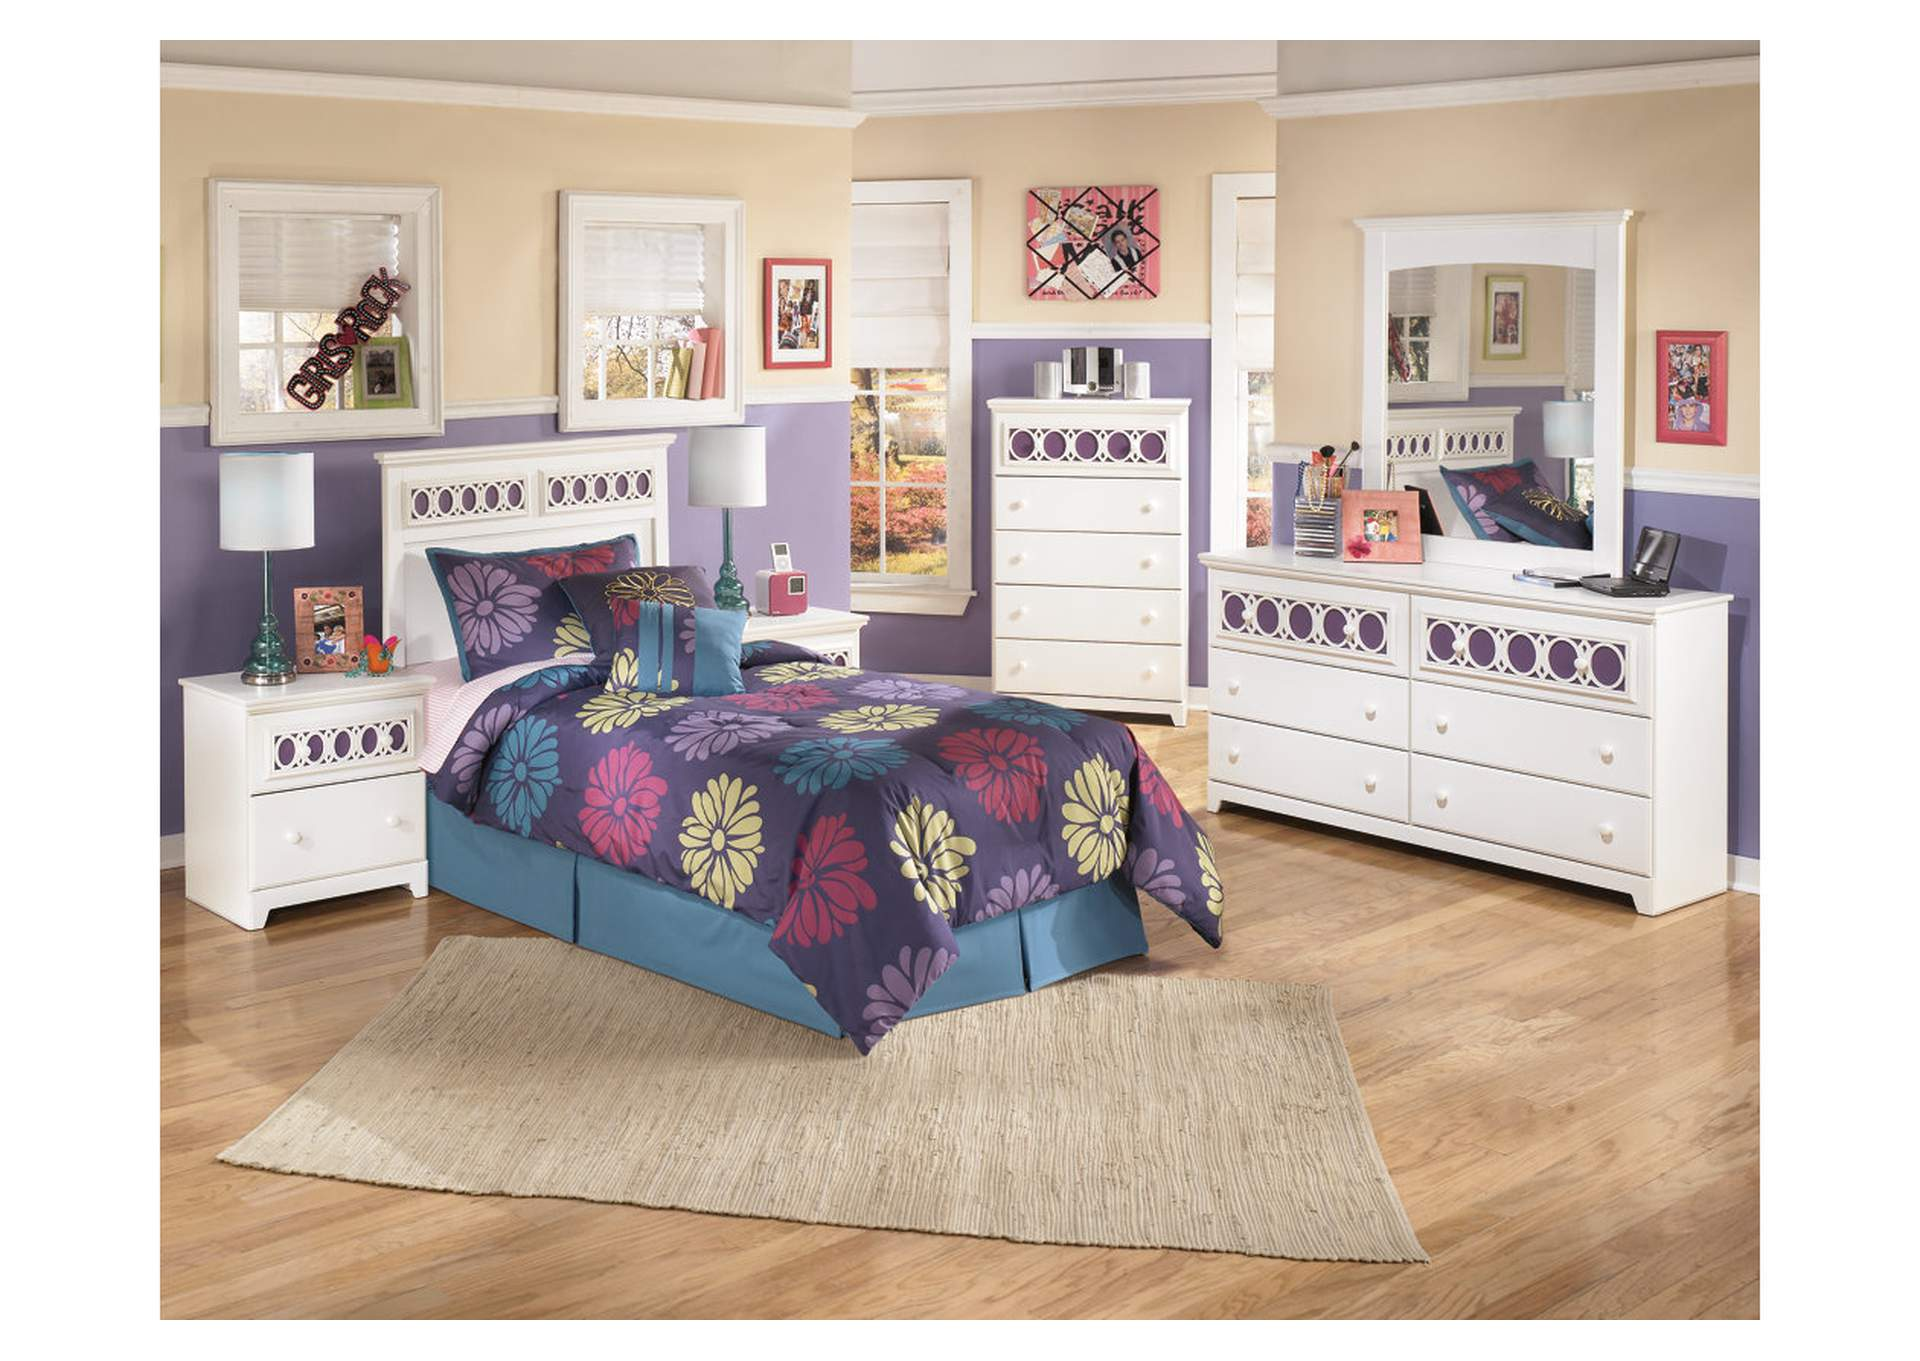 Zayley Twin Panel Headboard w/Dresser, Mirror & Nightstand,Signature Design by Ashley